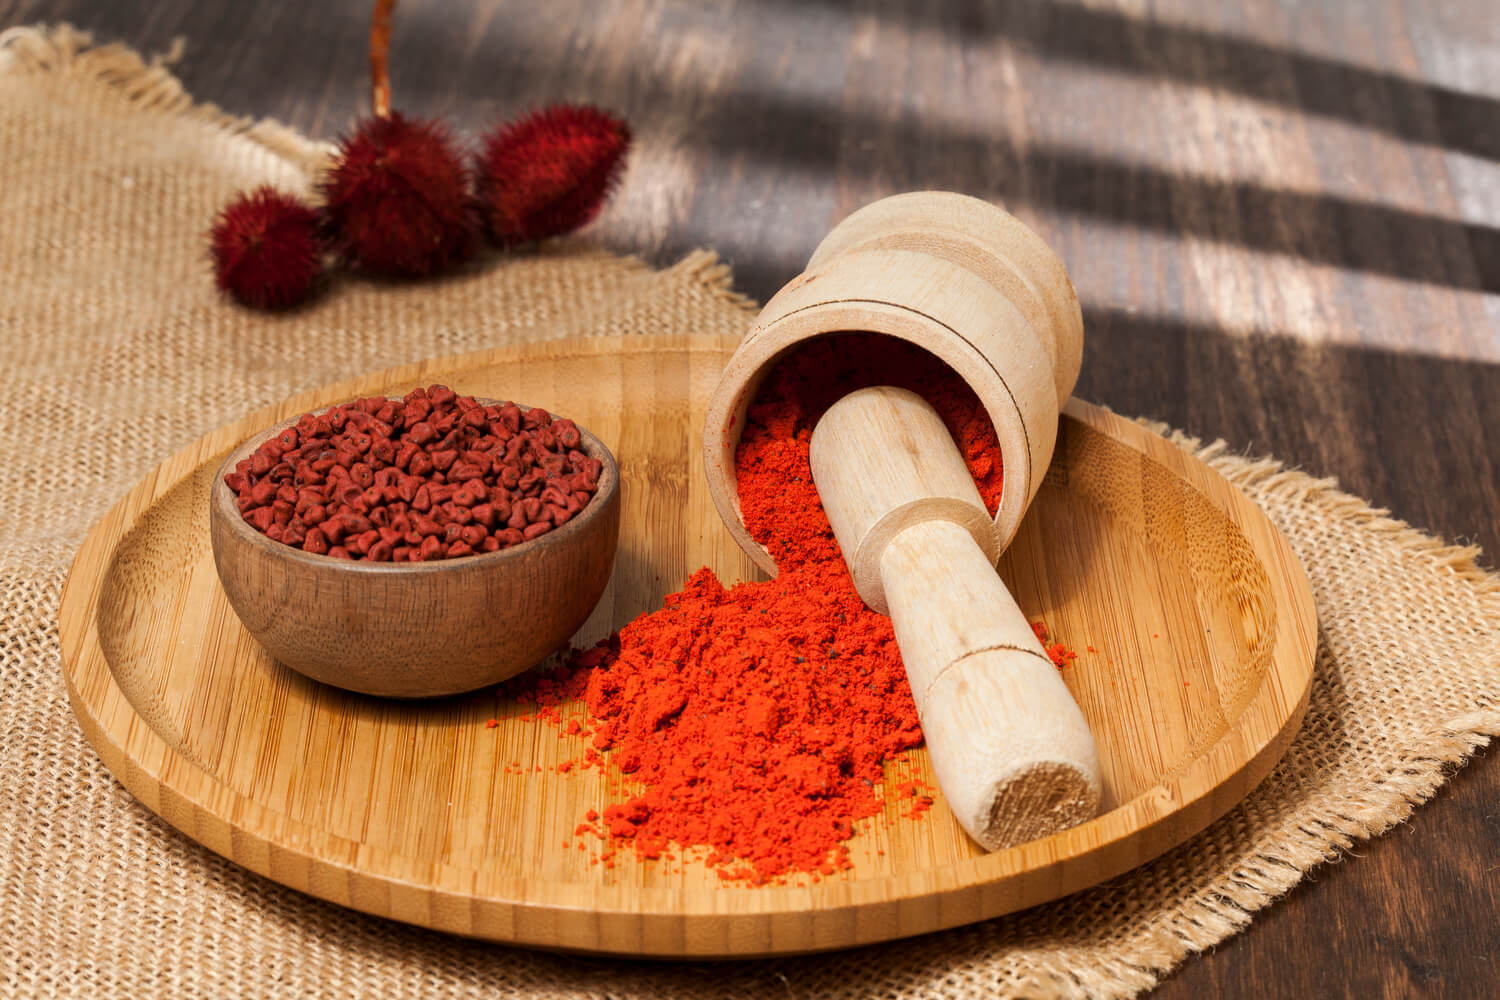 A bowl of achiote seeds sits next to a mortar and pestle filled with ground annatto.